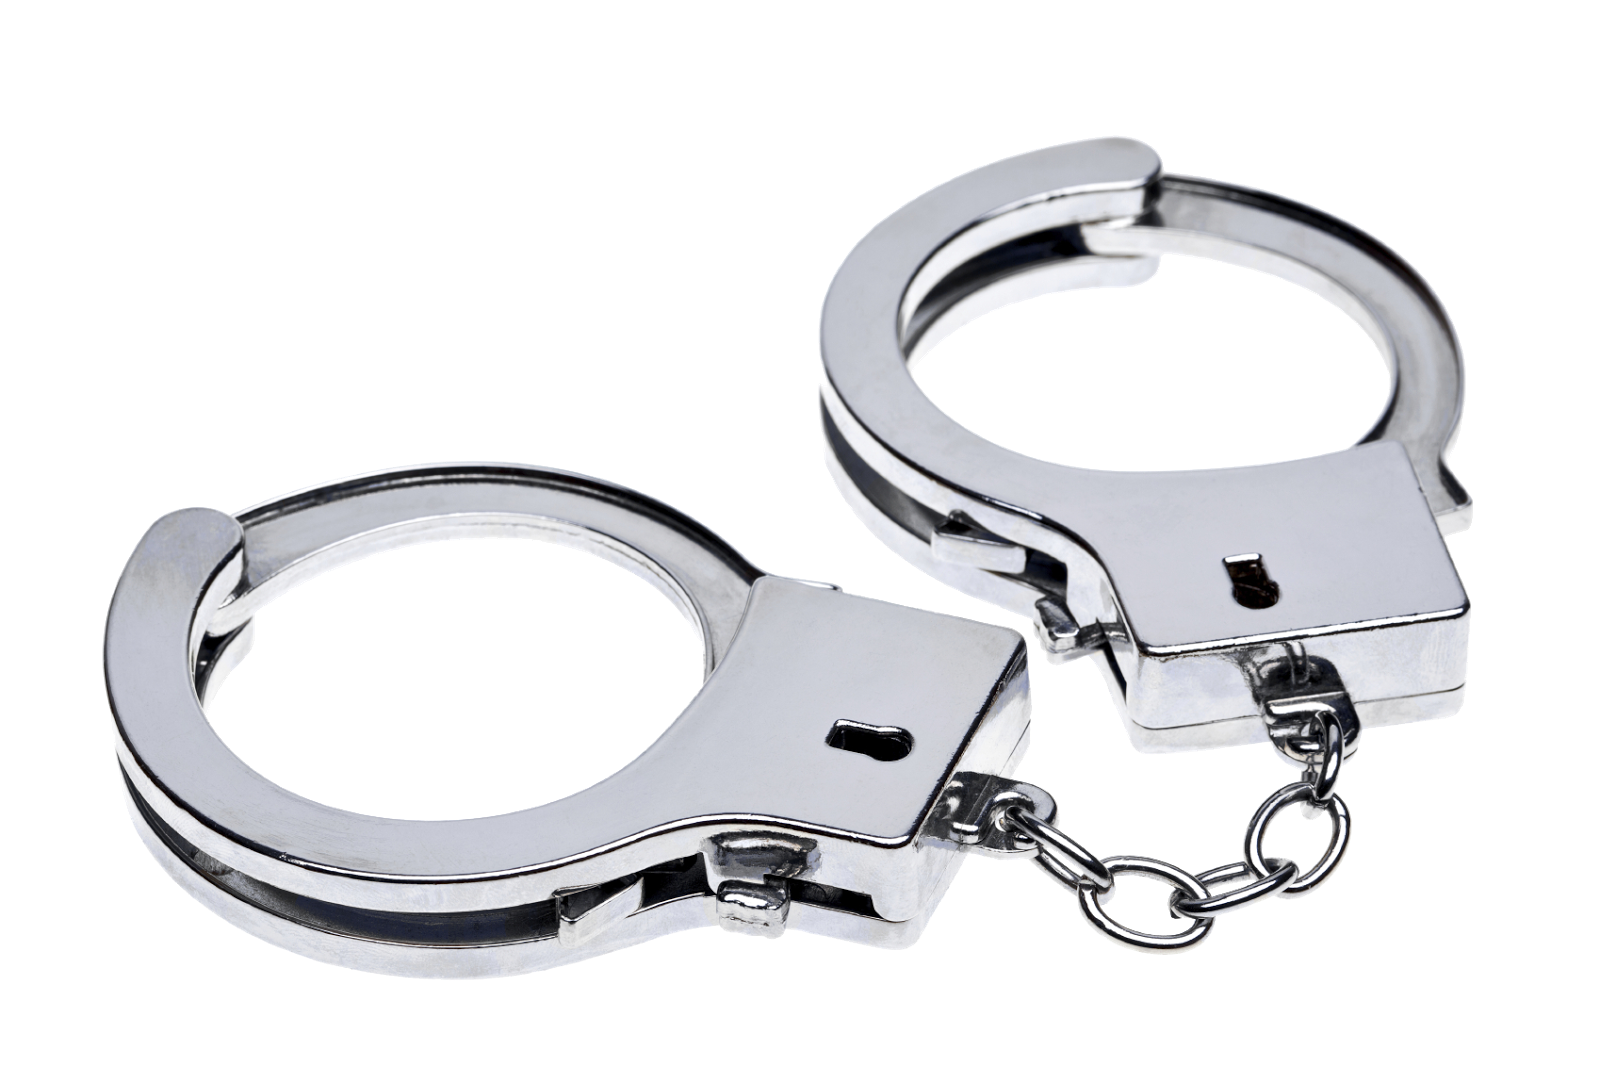 Handcuffs Png image #40823